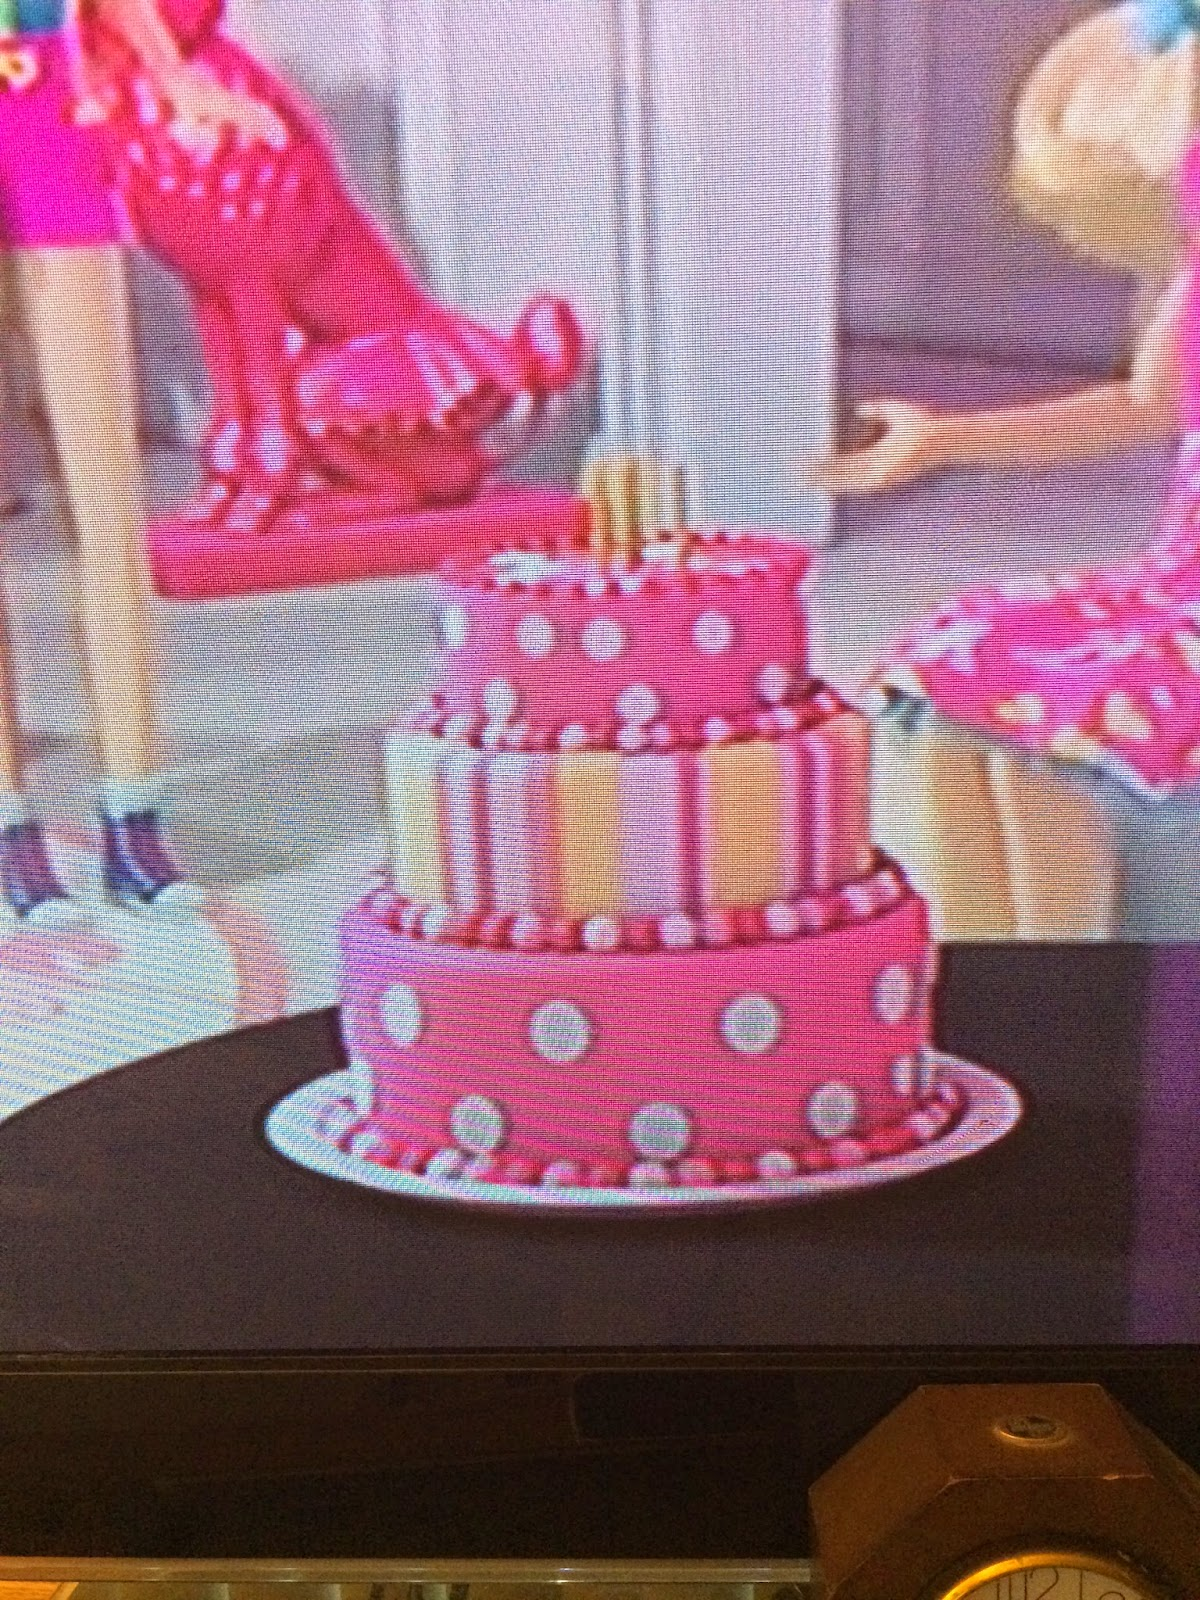 Cookied Oh Barbie Birthday Cake